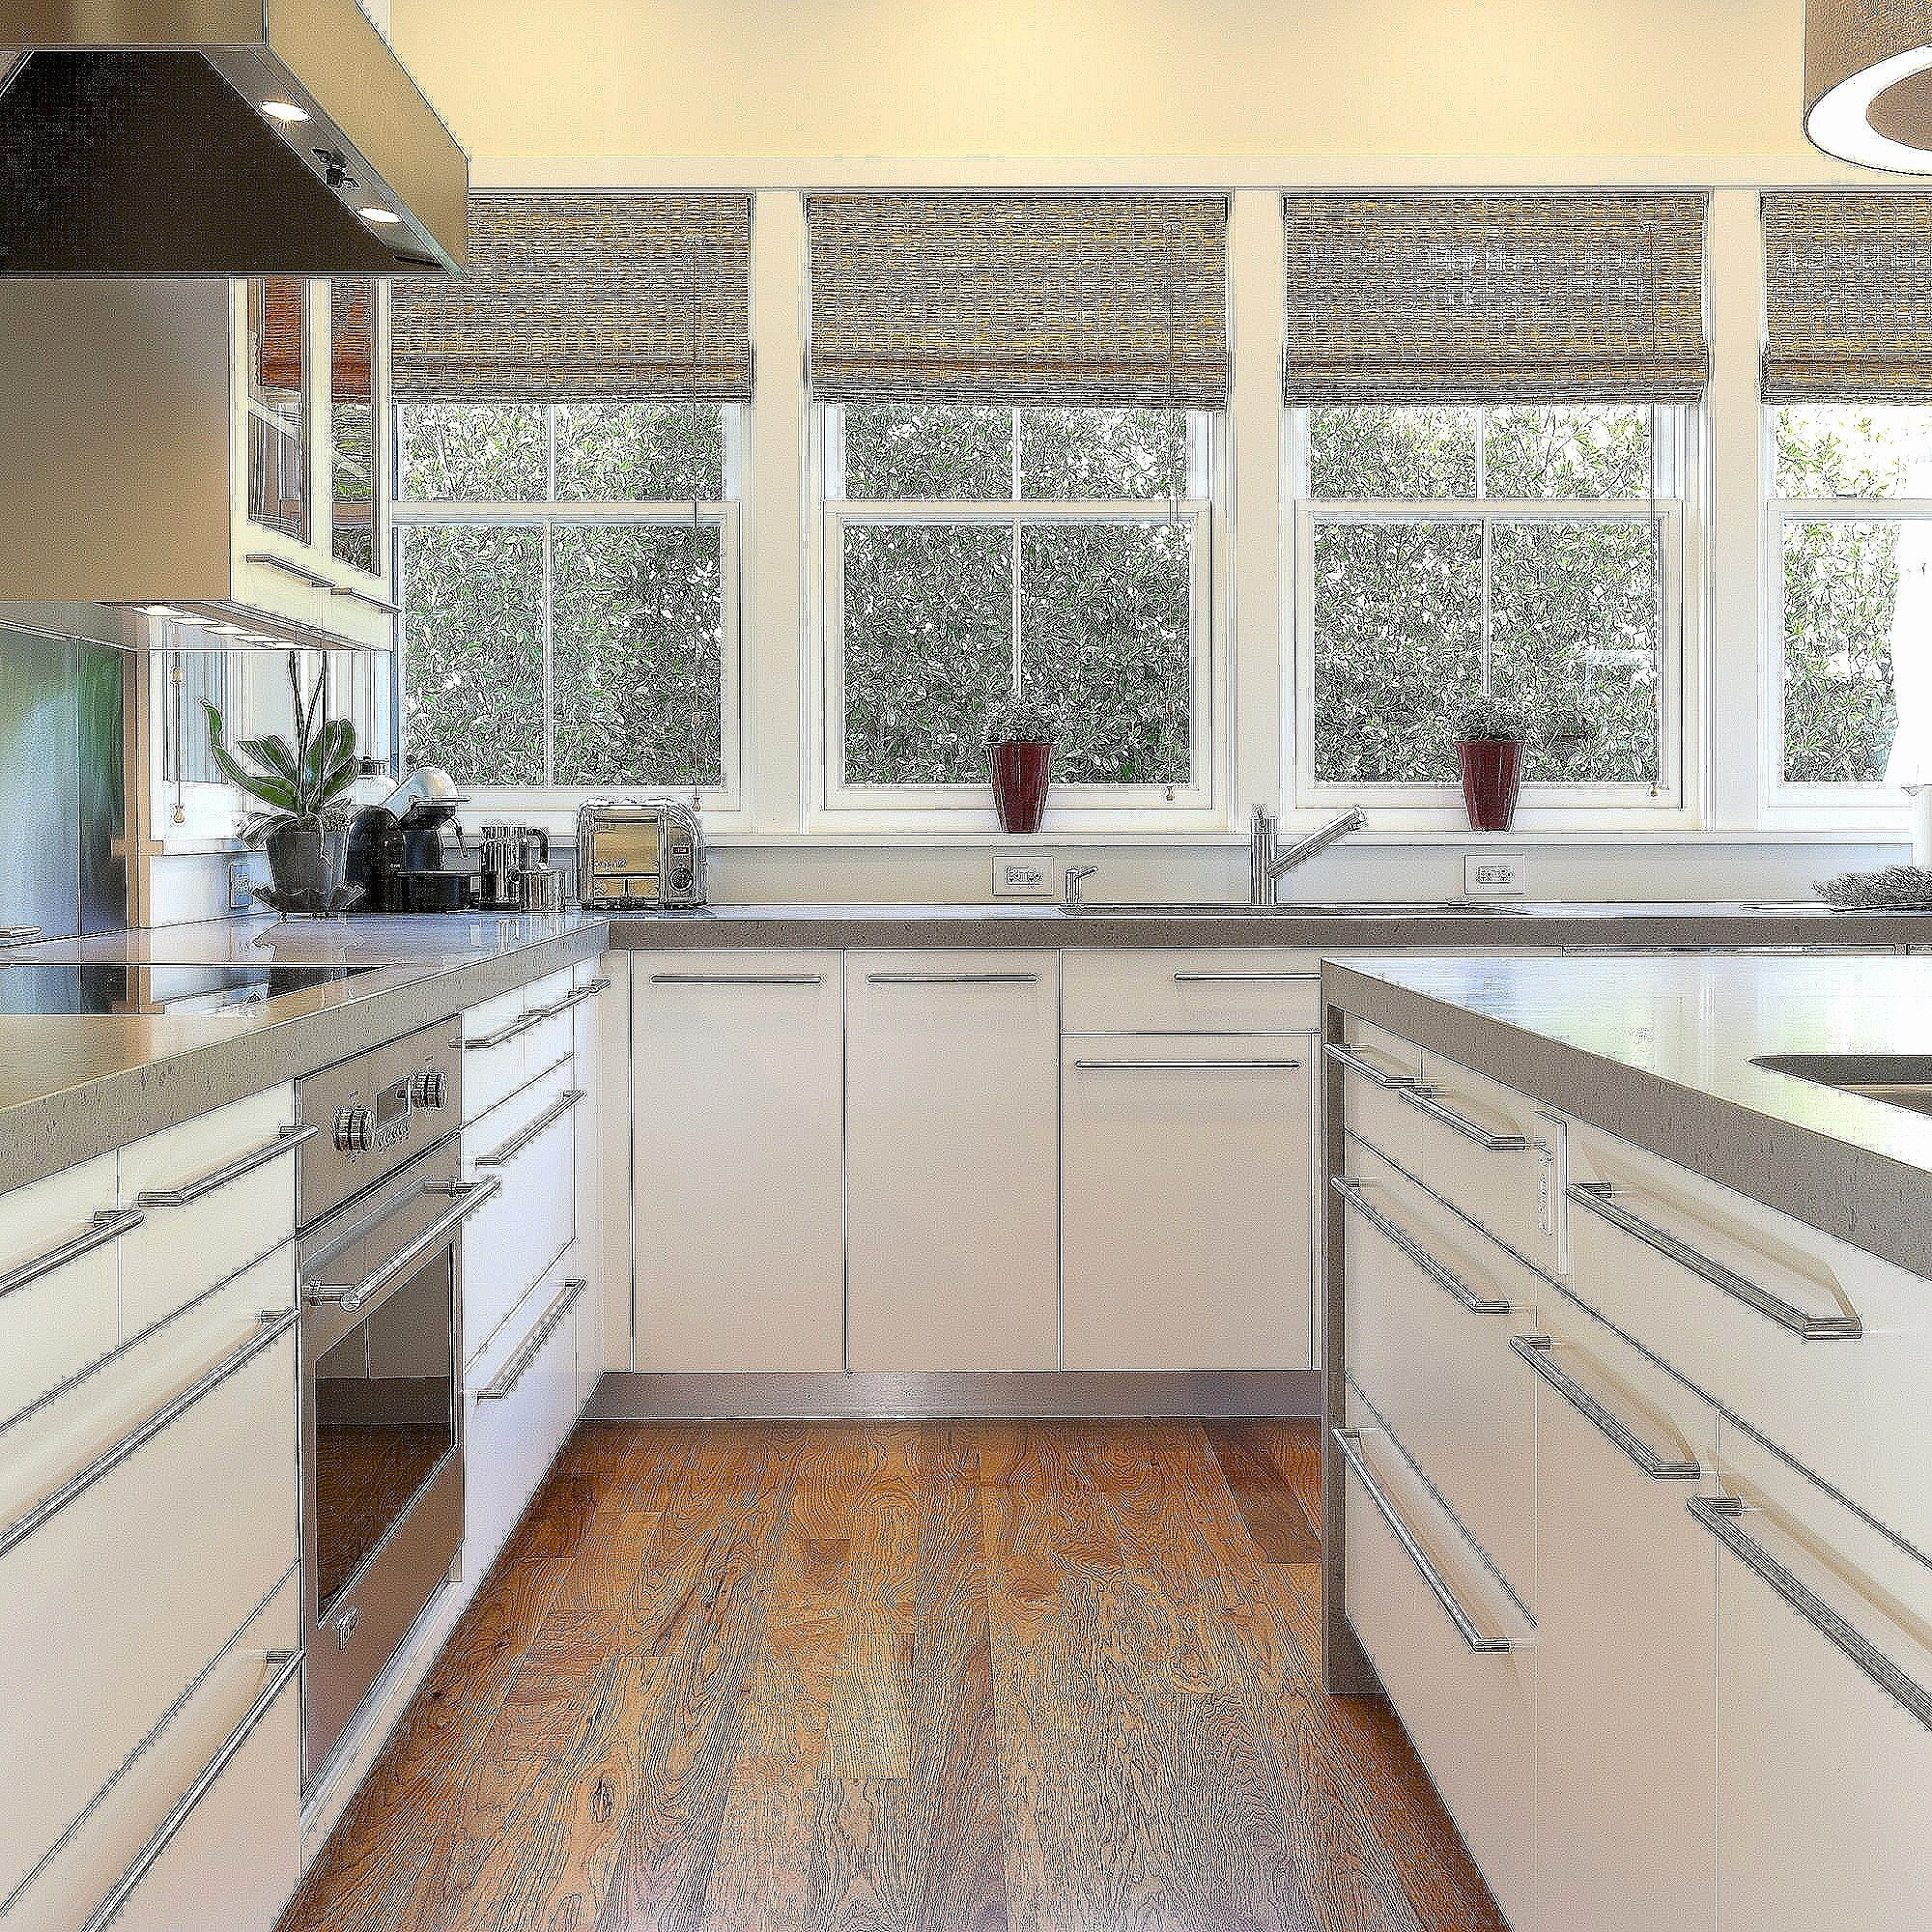 stunning kitchen cabinets with glass doors on top kitchen cabinet styles classic kitchen on kitchen cabinets with glass doors on top id=99934